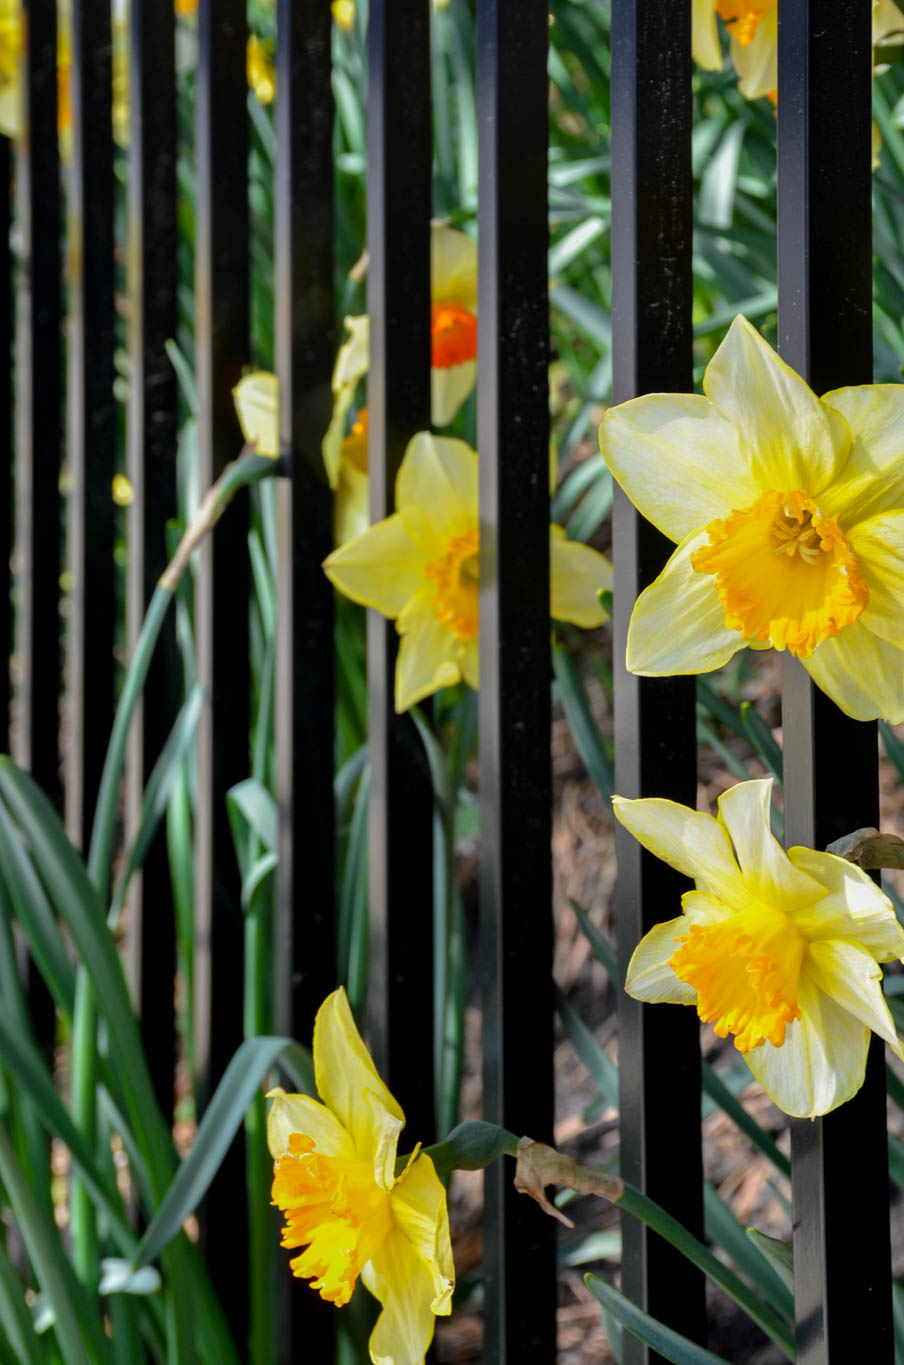 daffodils peaking out of the fence